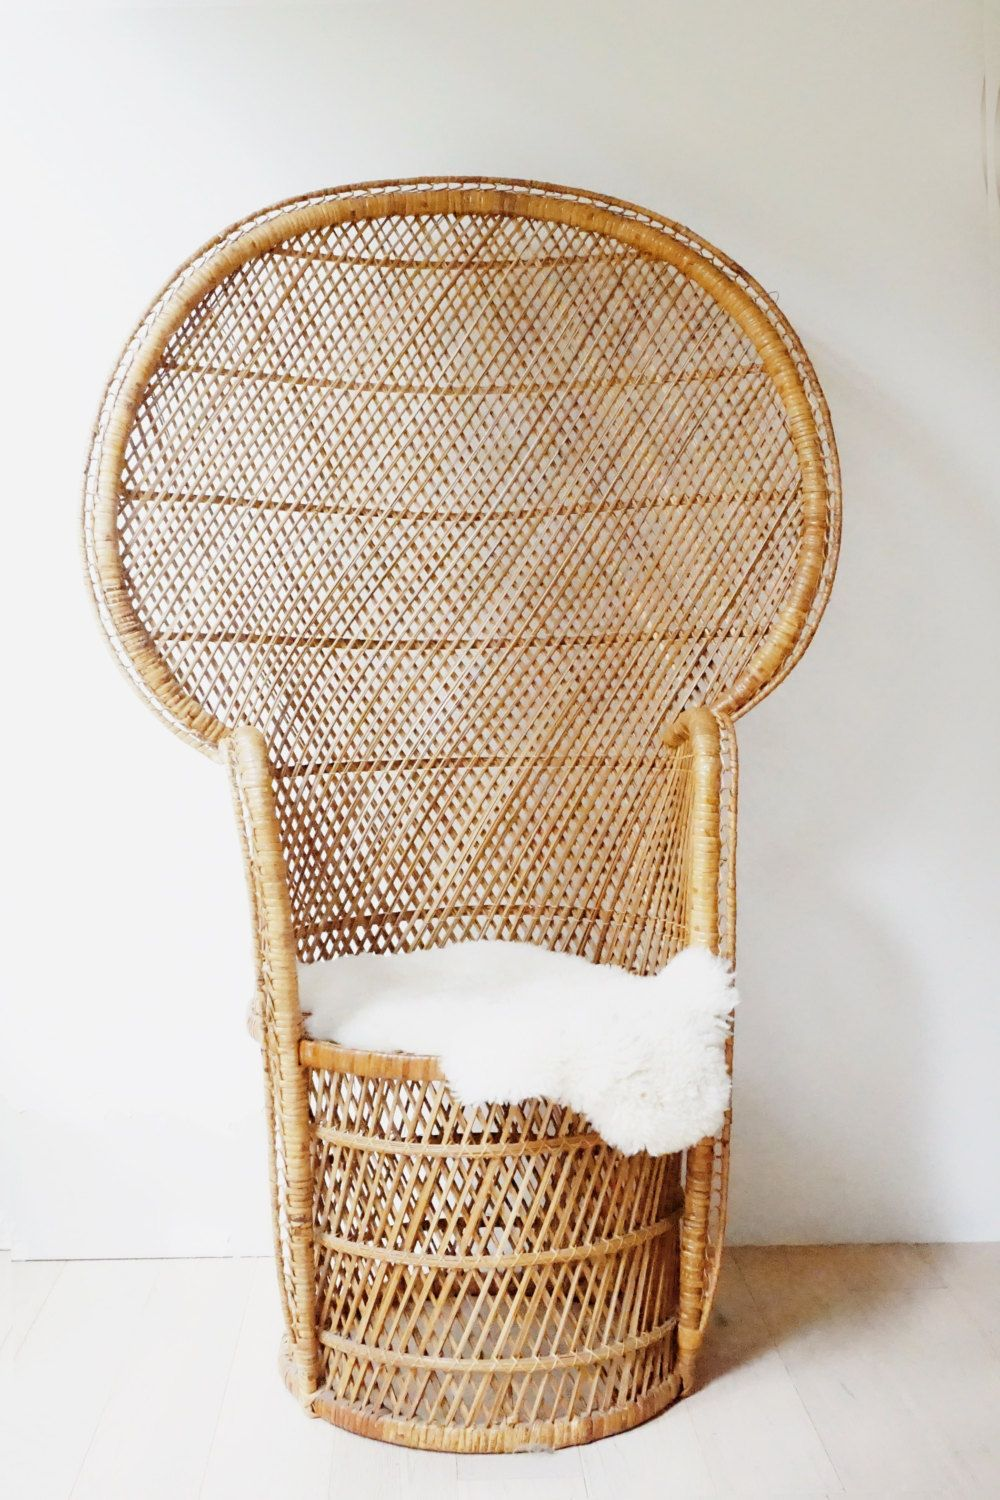 Wonderful Vintage Peacock Chair, Rattan Full Size, Woven Handmade 70s Wicker Chair,  Large